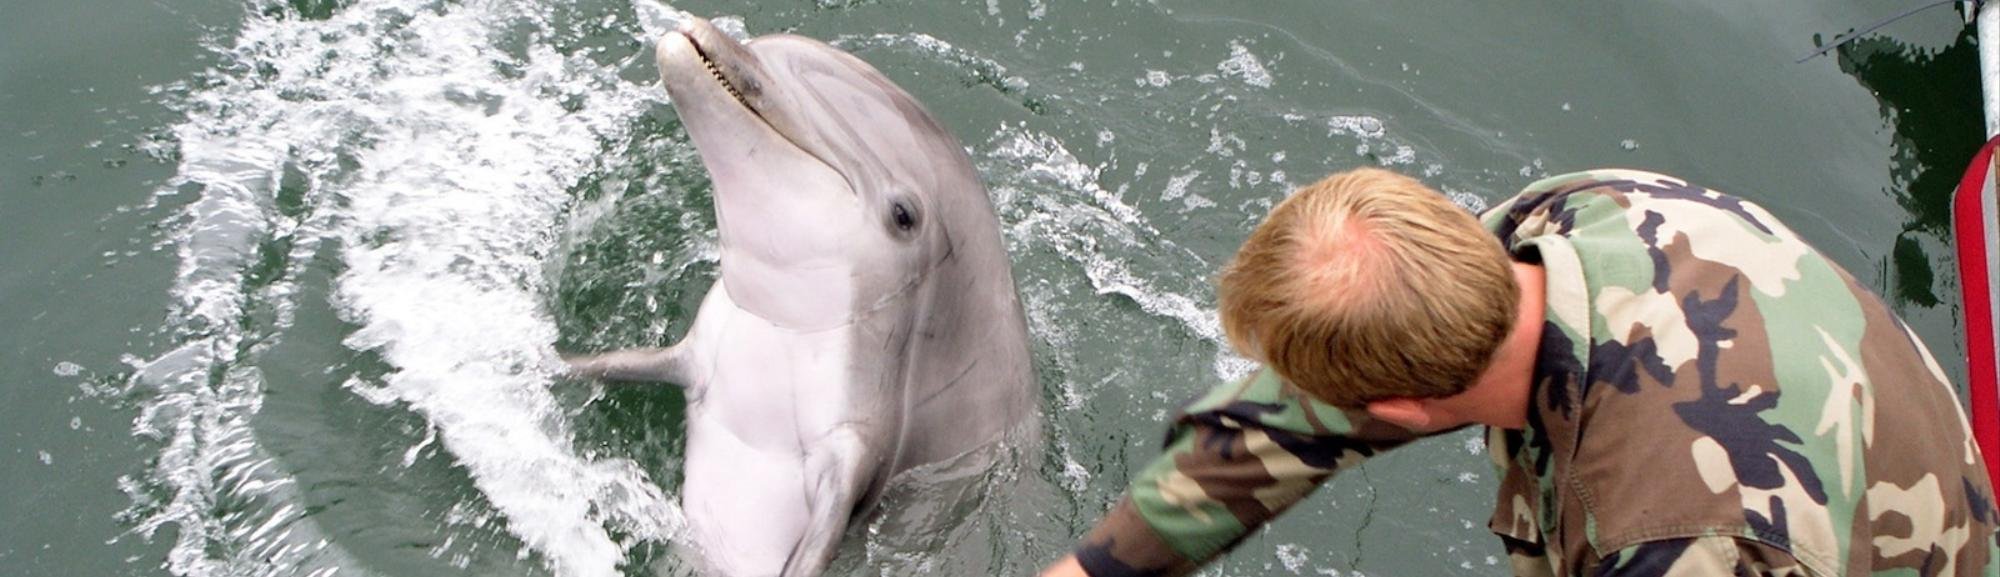 Russia Has Taken Control of Ukraine's Military Attack Dolphins